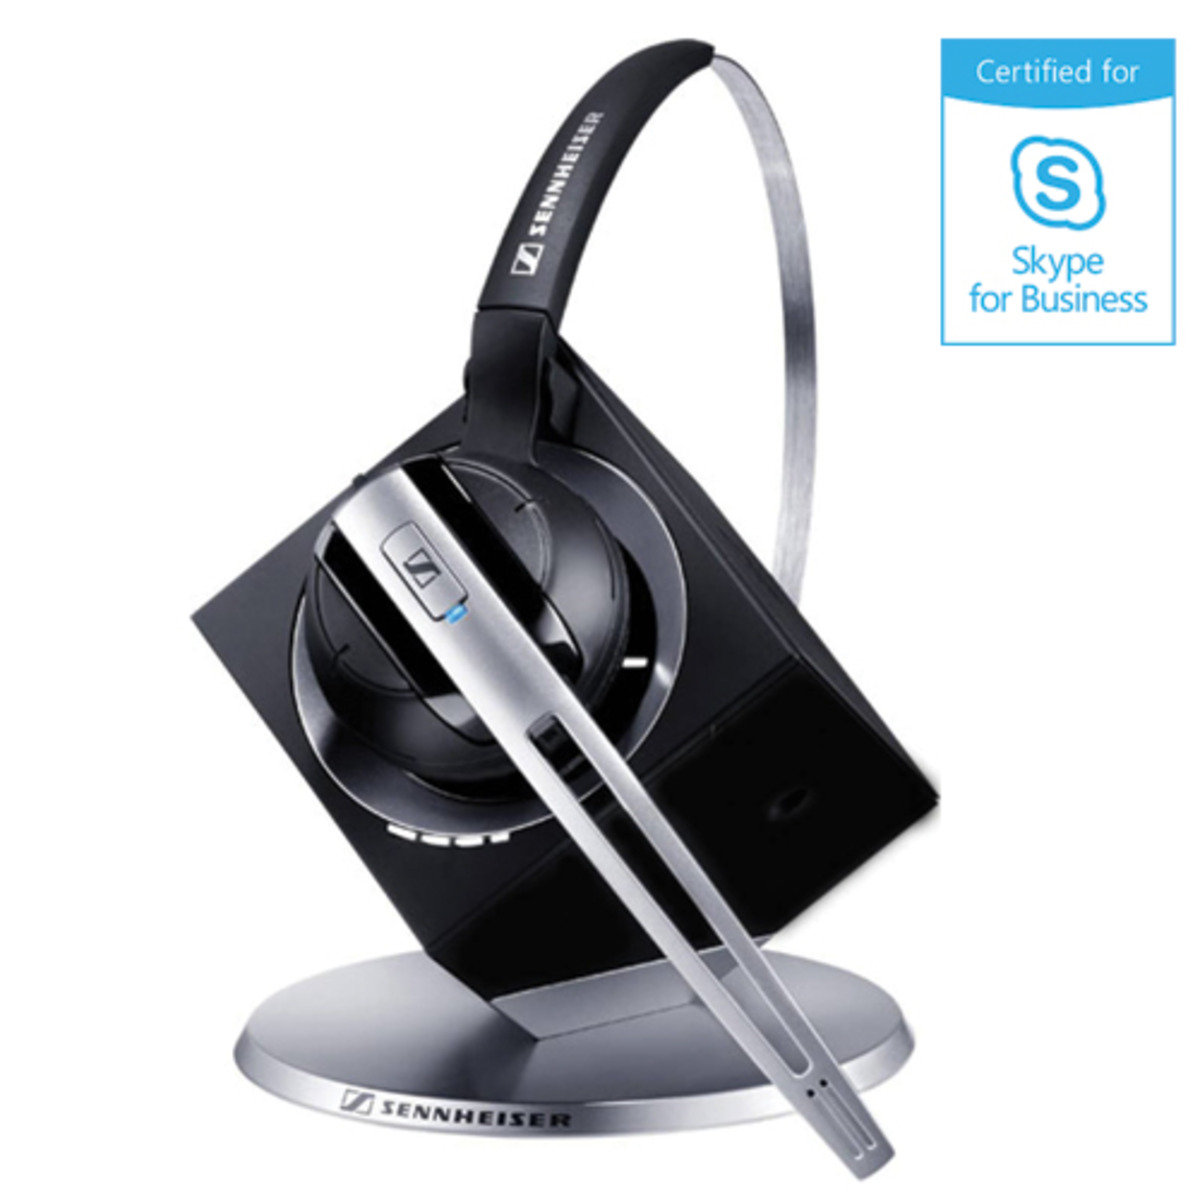 DW 10 ML Monaural 2-in-1 Wireless DECT Headset